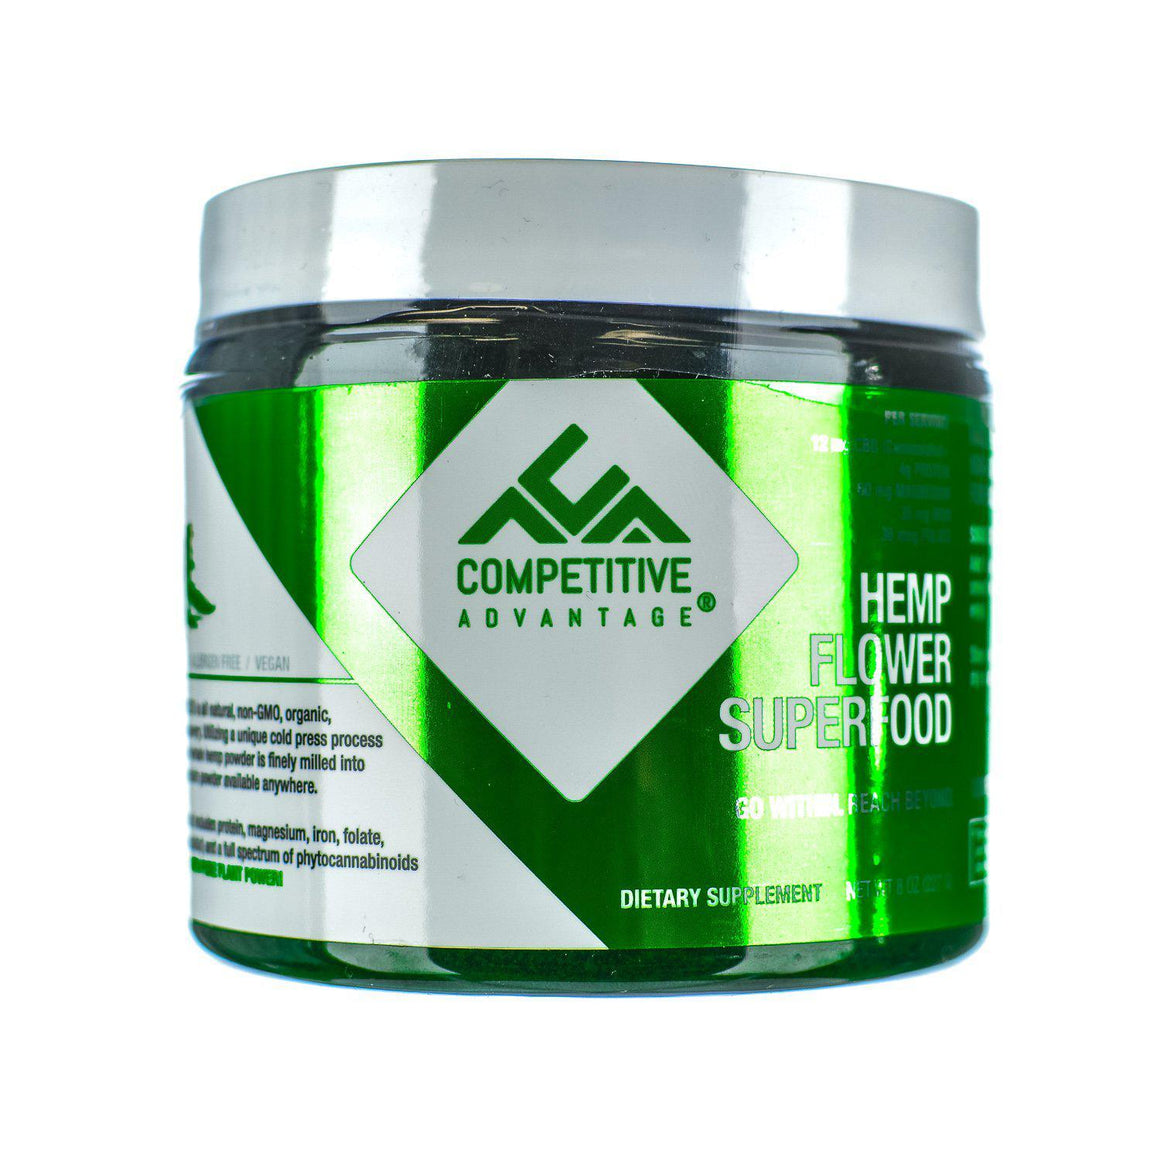 Competitive Advantage Hemp Flower Superfood | Andhemp.com